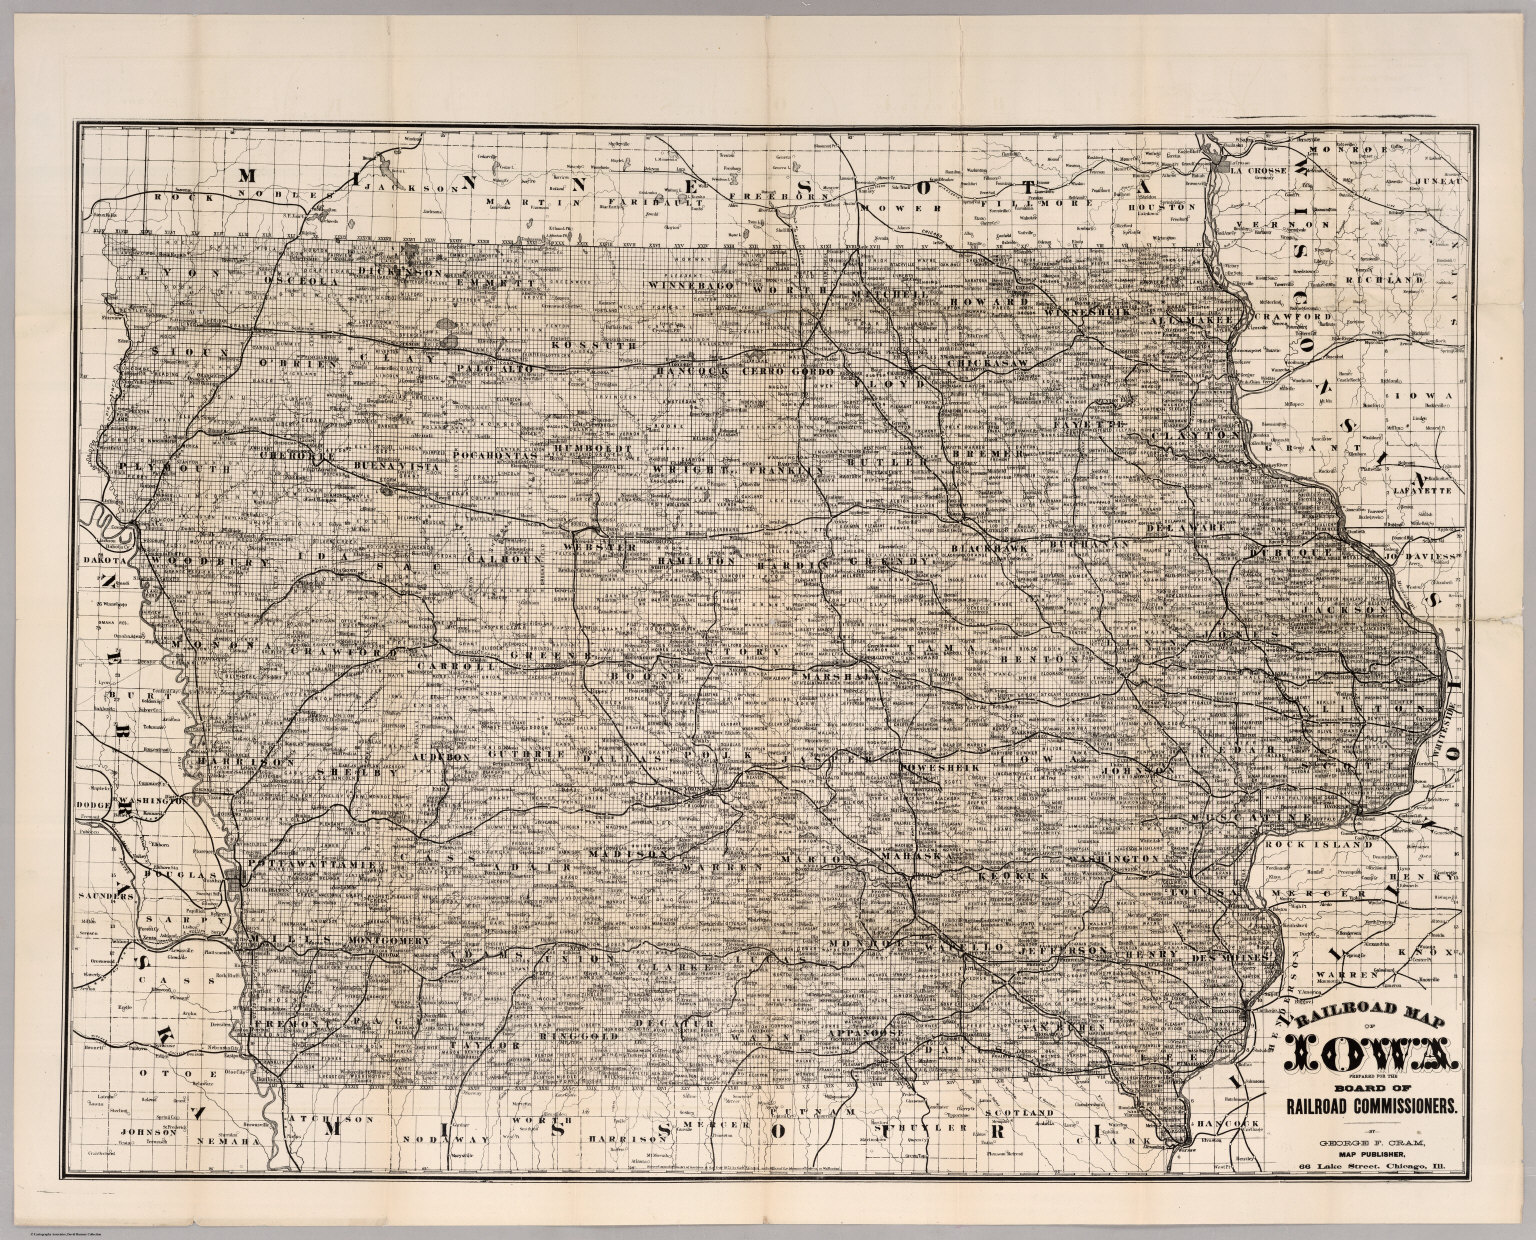 Railroad Map Of Iowa - David Rumsey Historical Map Collection